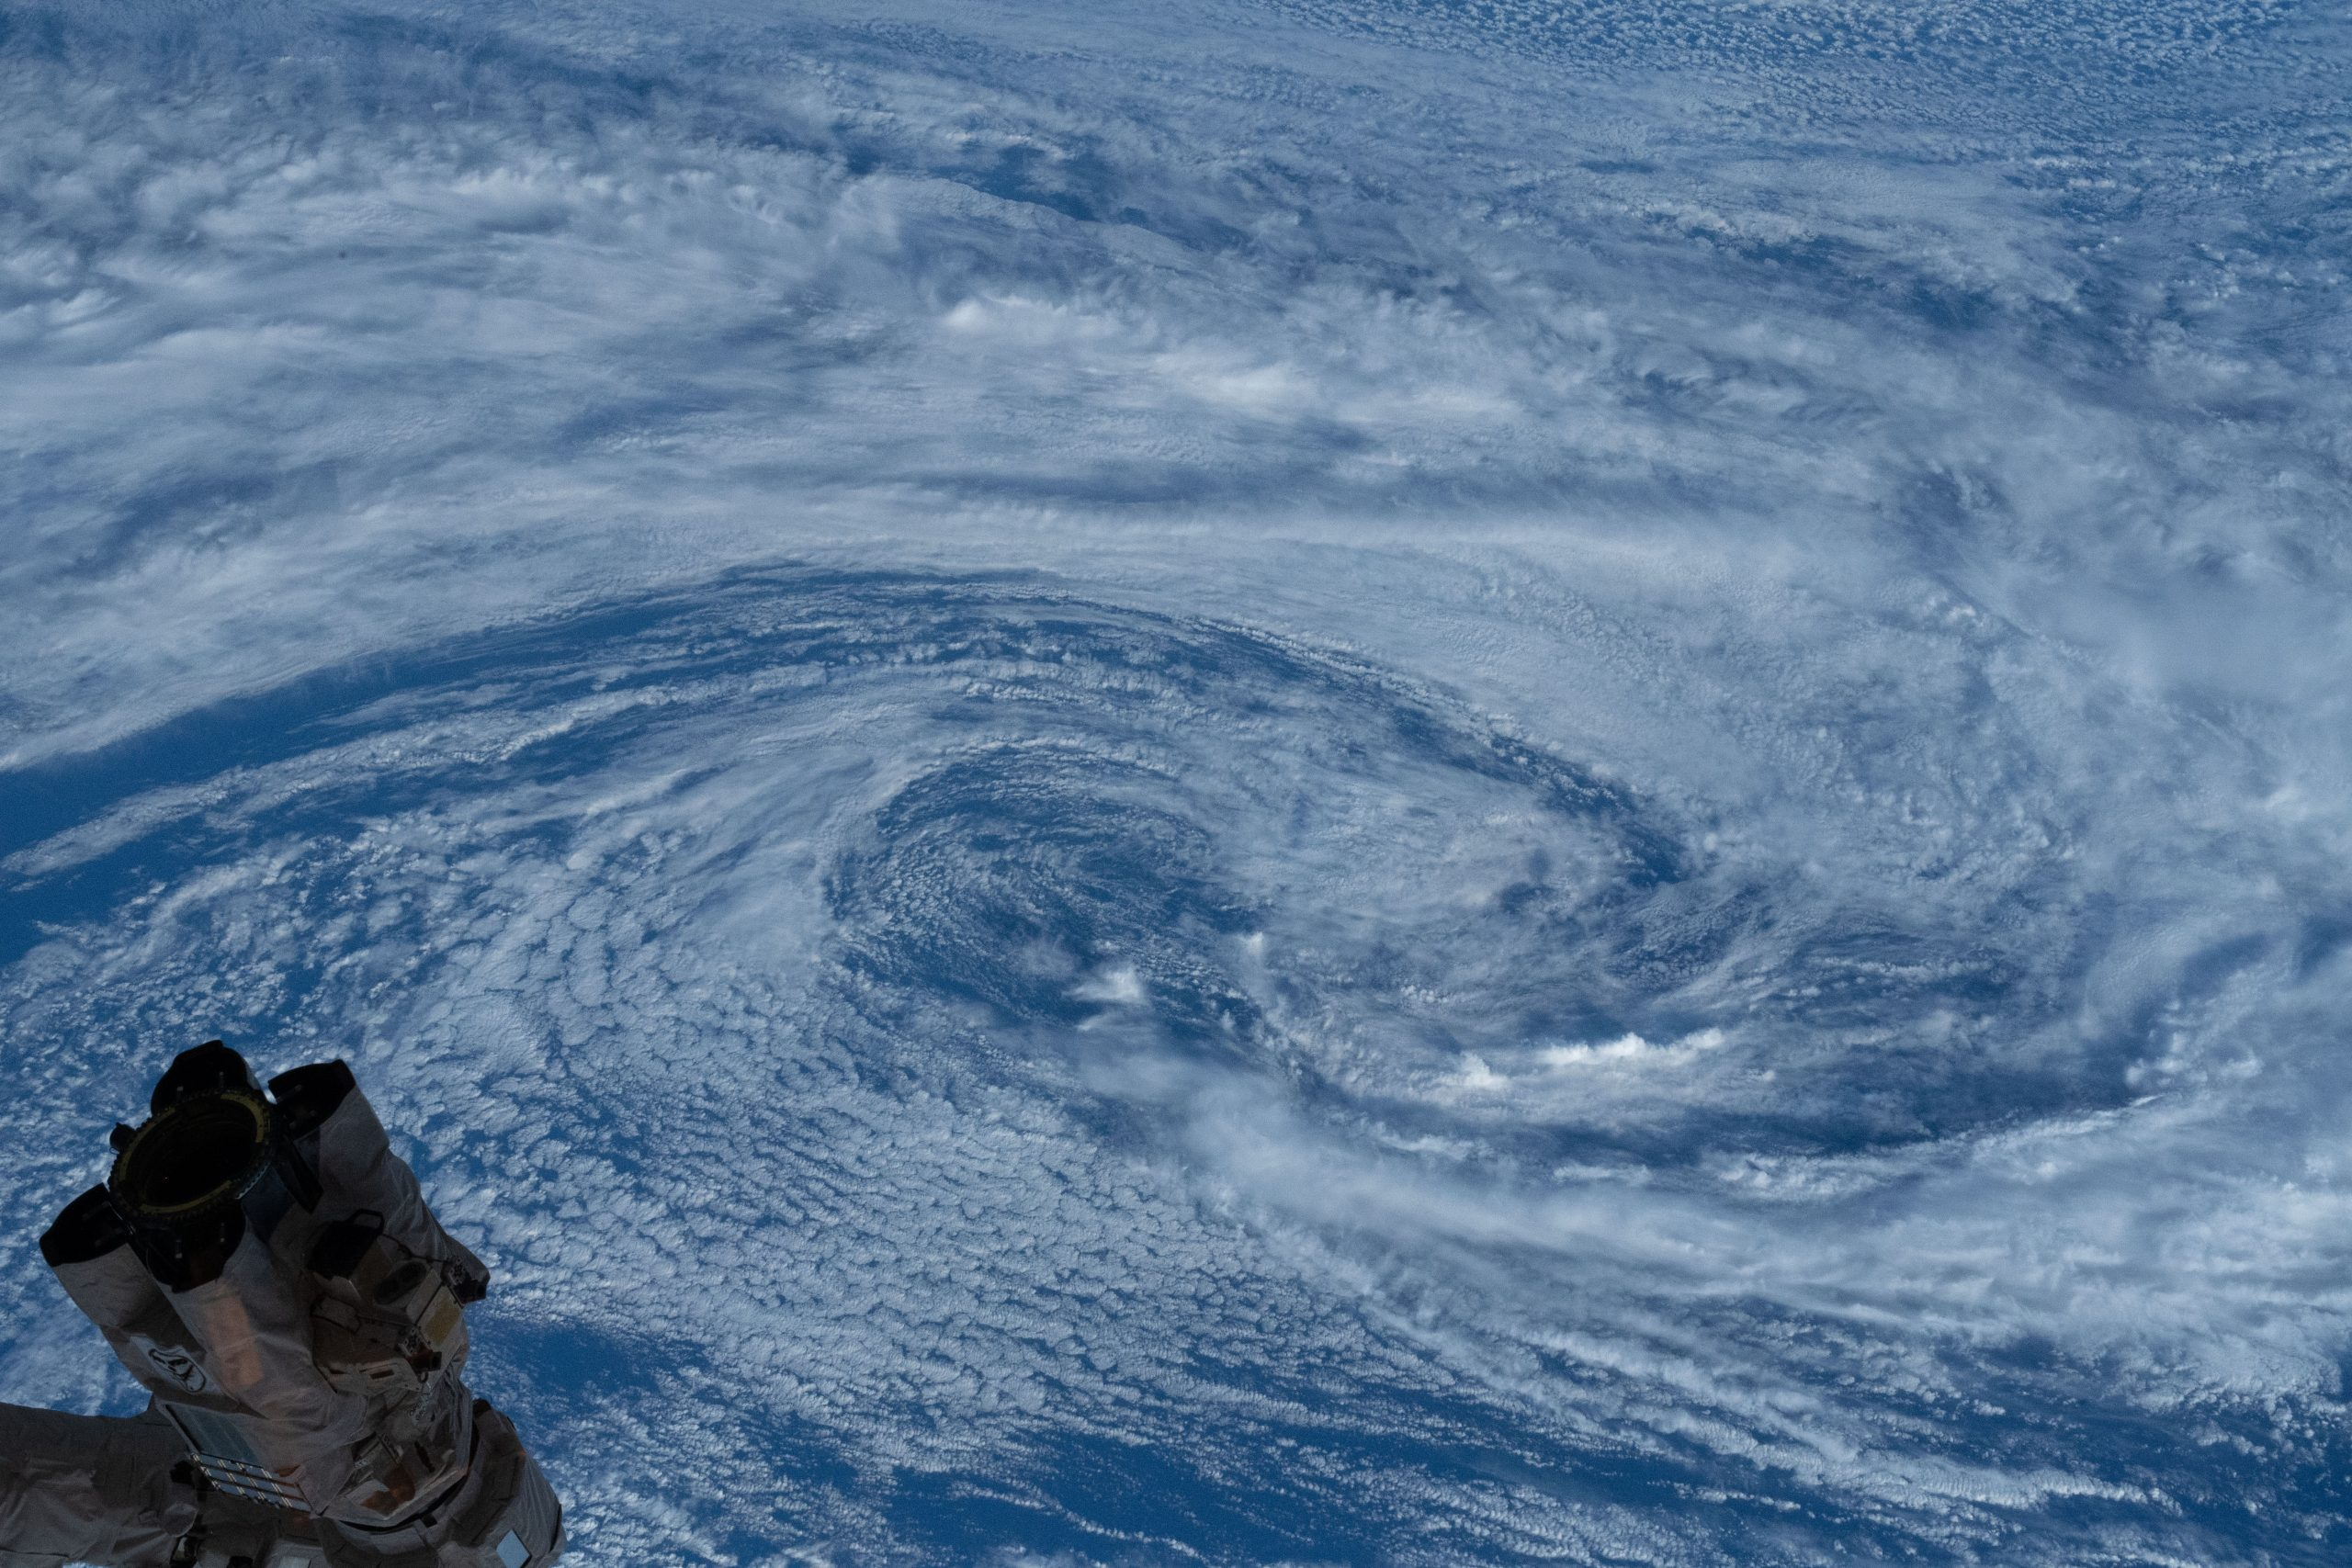 Station Crew Sees Typhoon from Space